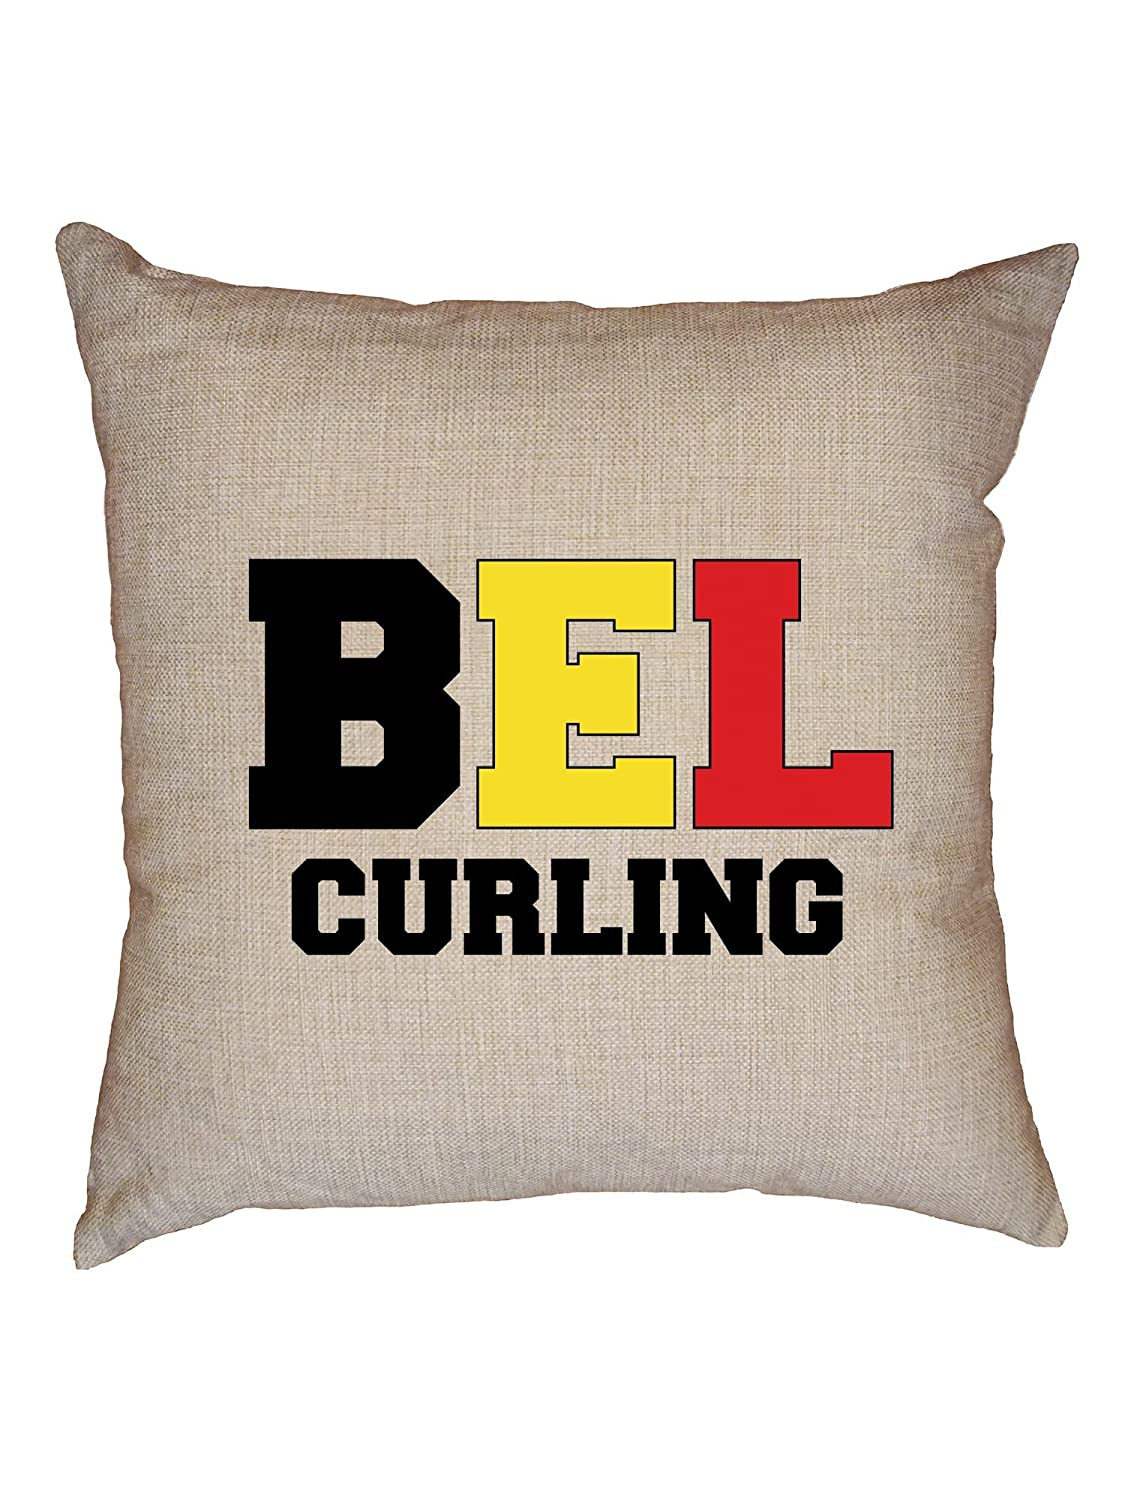 HollywoodスレッドBelgian Curling – Winter Olympic – Belフラグ装飾リネンスロークッション枕ケースwith挿入   B07FN2ND2J